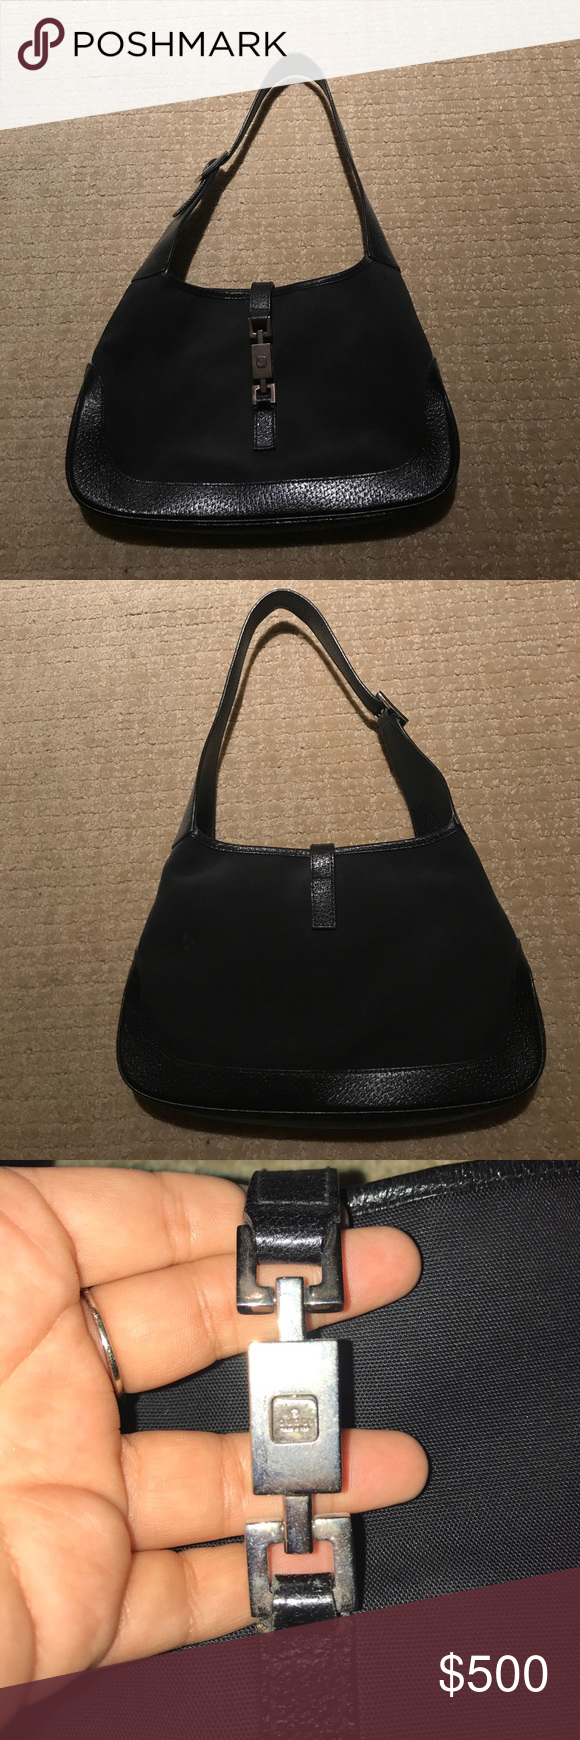 a81fef5045a89d 90's Black Gucci Purse Authentic The 90's are back! This is an authentic  vintage Gucci purse from the 90's. Barely worn and in perfect condition.